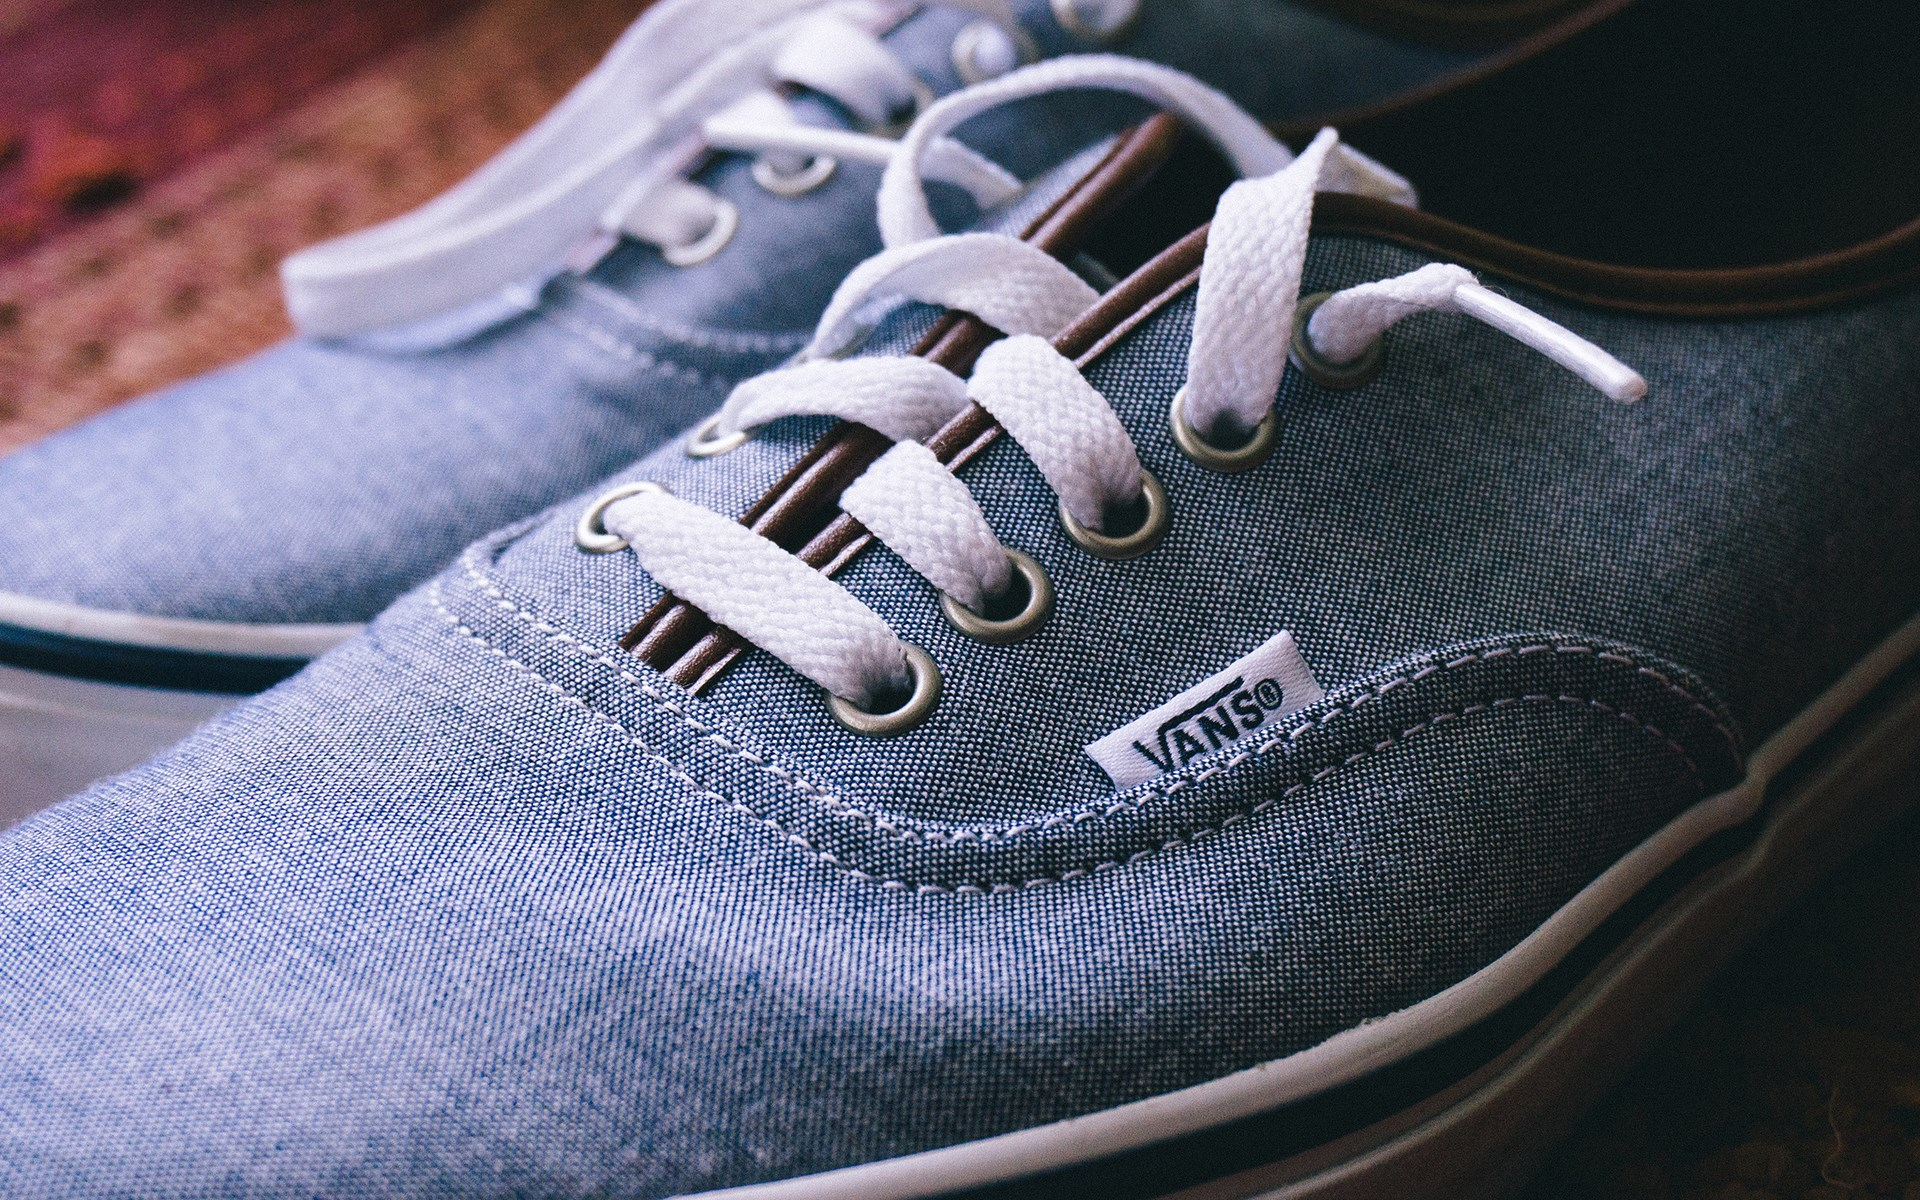 Vans-shoes-wallpaper-hd-backgrounds